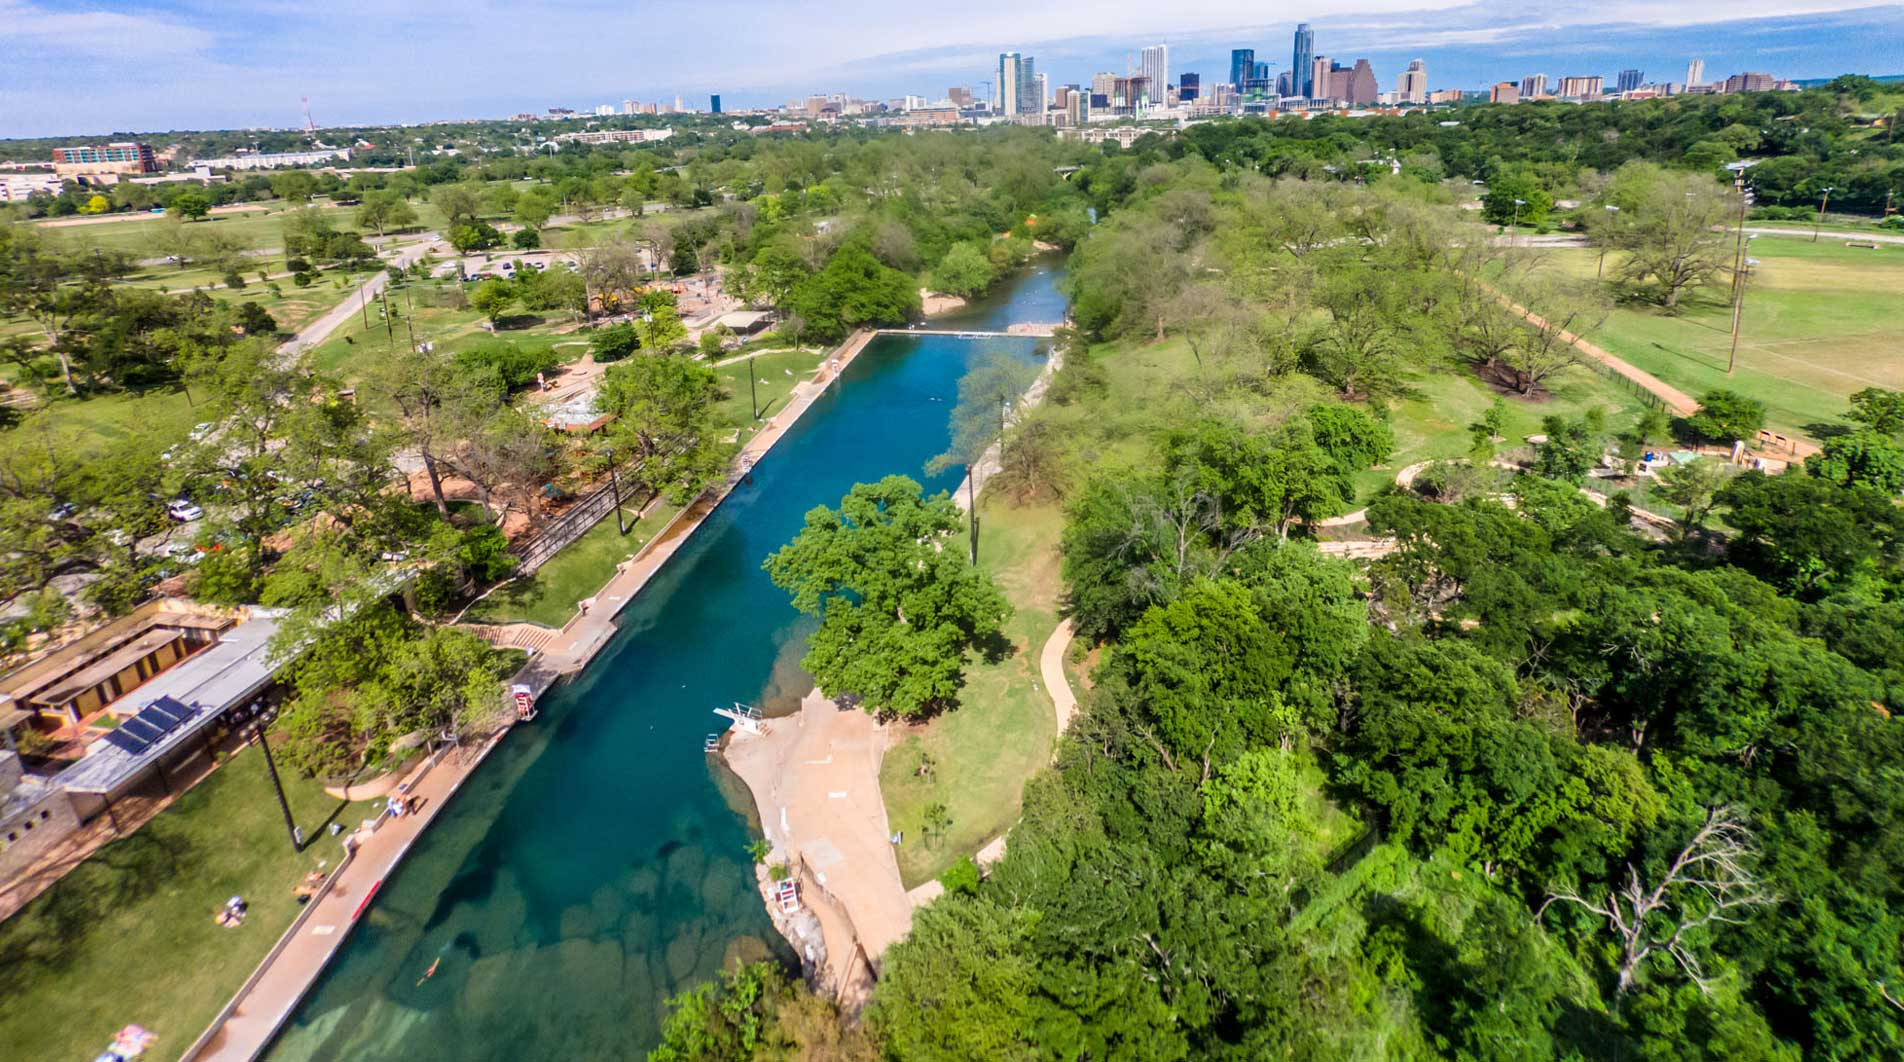 Barton Springs Pool, Spring Fed Swimming Holes, Zilker Park Swimming Pool, Austin's Best Swimming Holes,  Texas Spring Fed Rivers